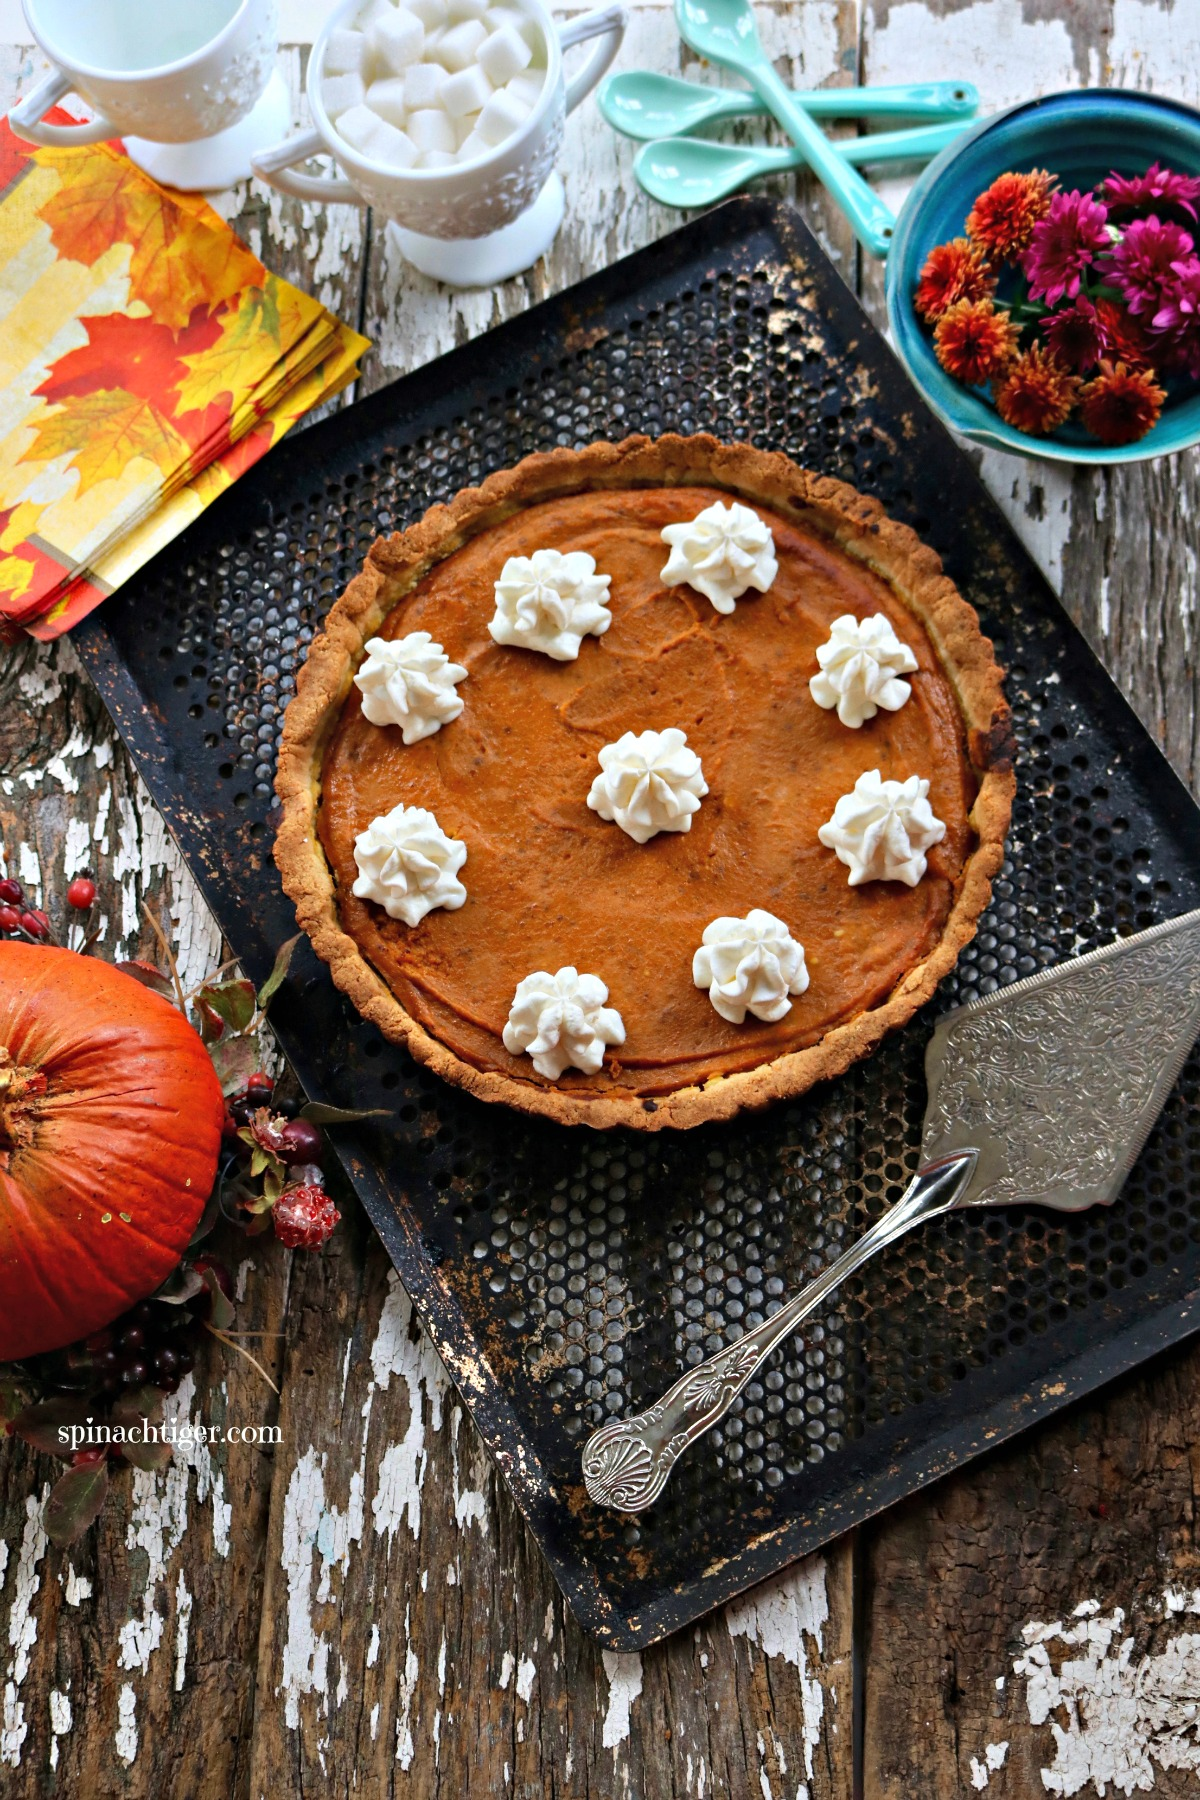 How to Make low carb pumpkin pie with almond flour pie crust from Spinach Tiger